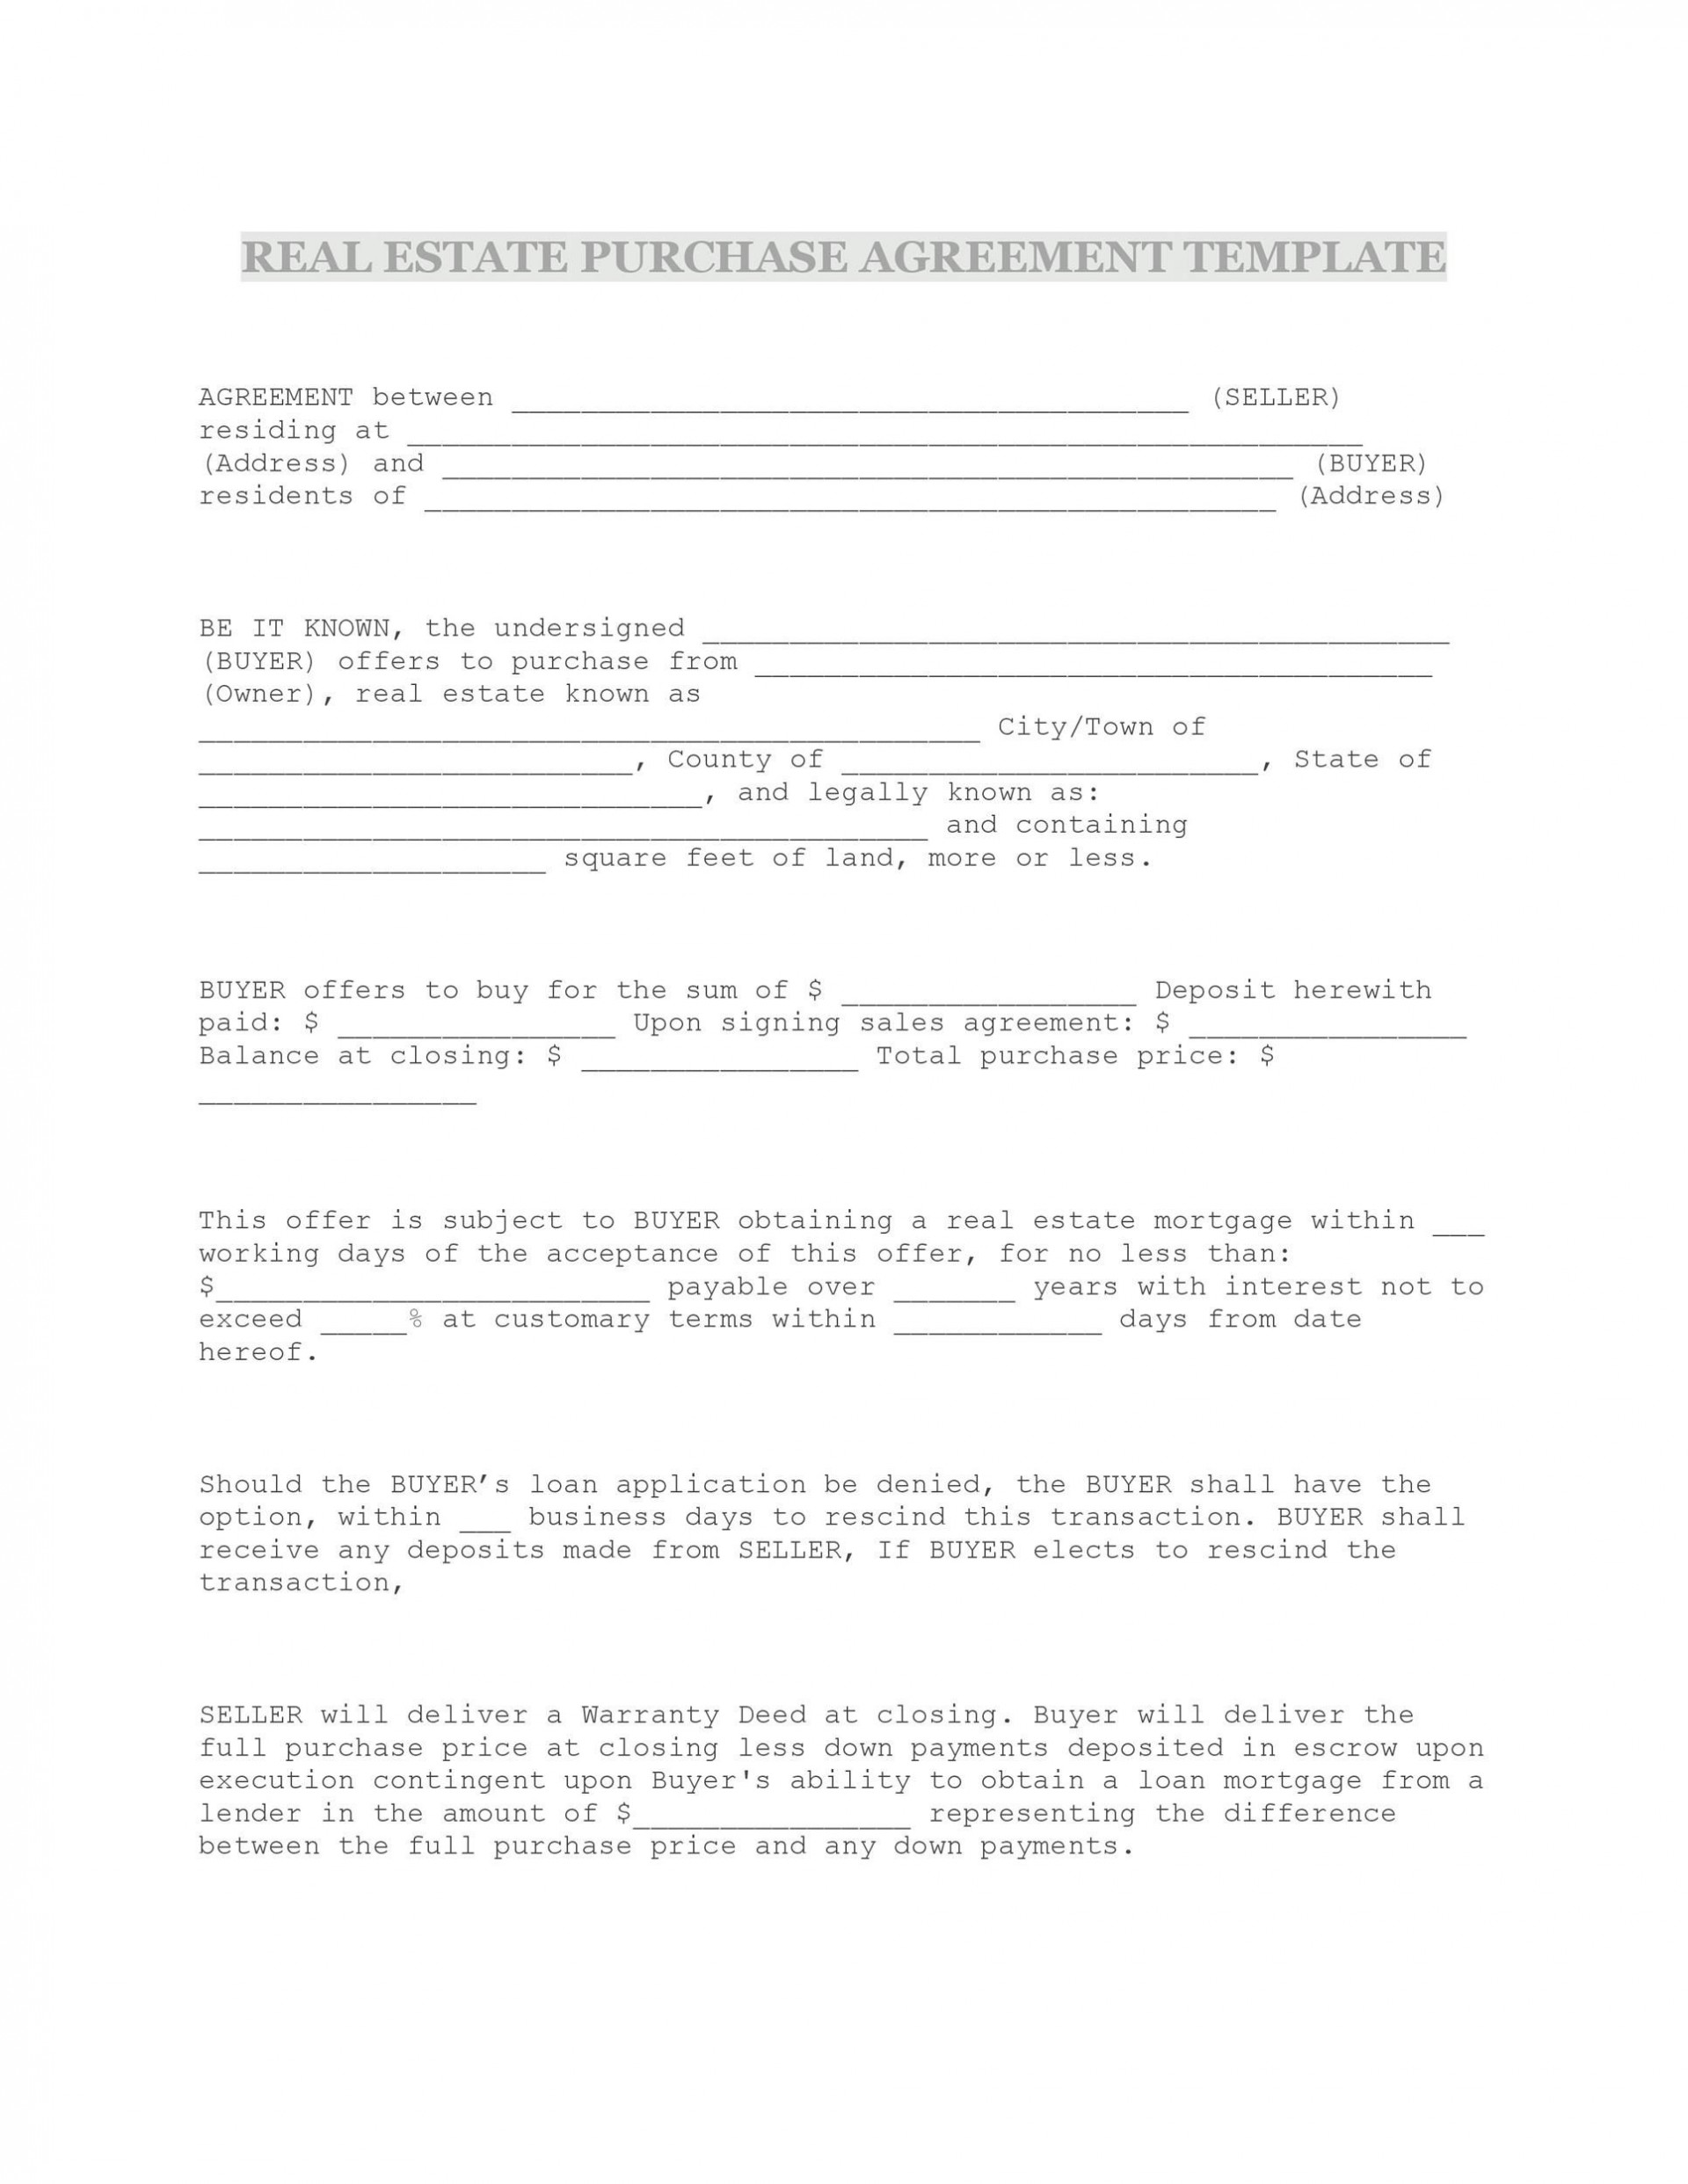 008 Imposing Real Estate Purchase Agreement Template Photo  Contract California Minnesota British Columbia1920